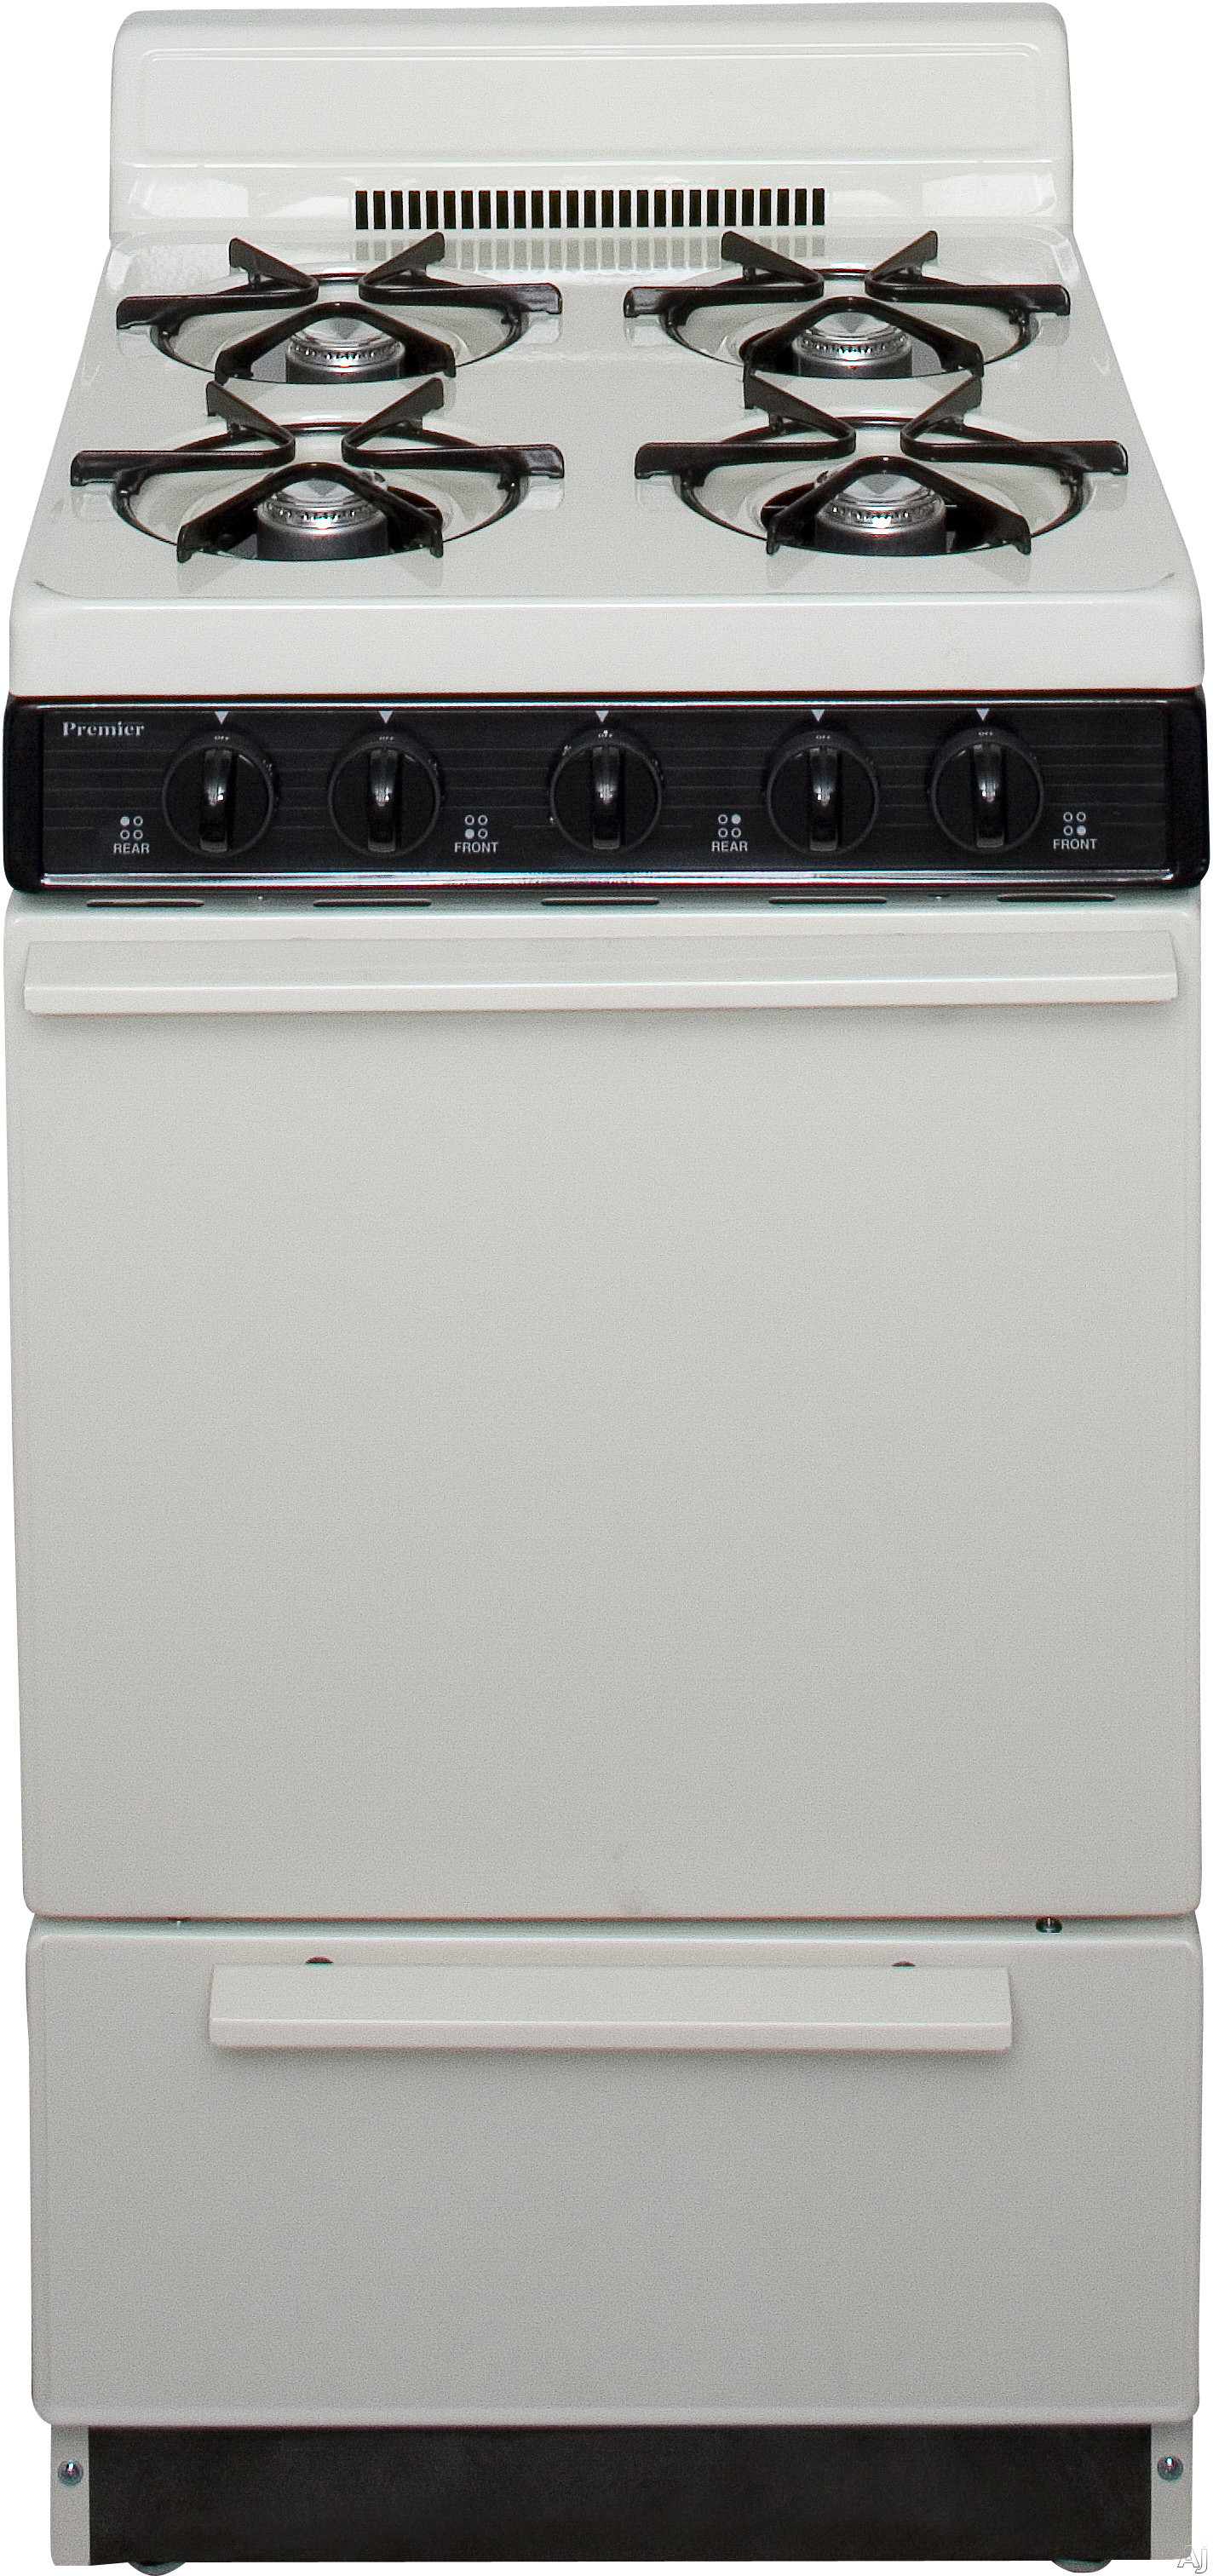 Premier BAK100TP 20 Inch Freestanding Gas Range with 4 Open Burners Battery Spark Ignition 17 000 BTU Burner and 4 Inch Porcelain Backguard Bisque